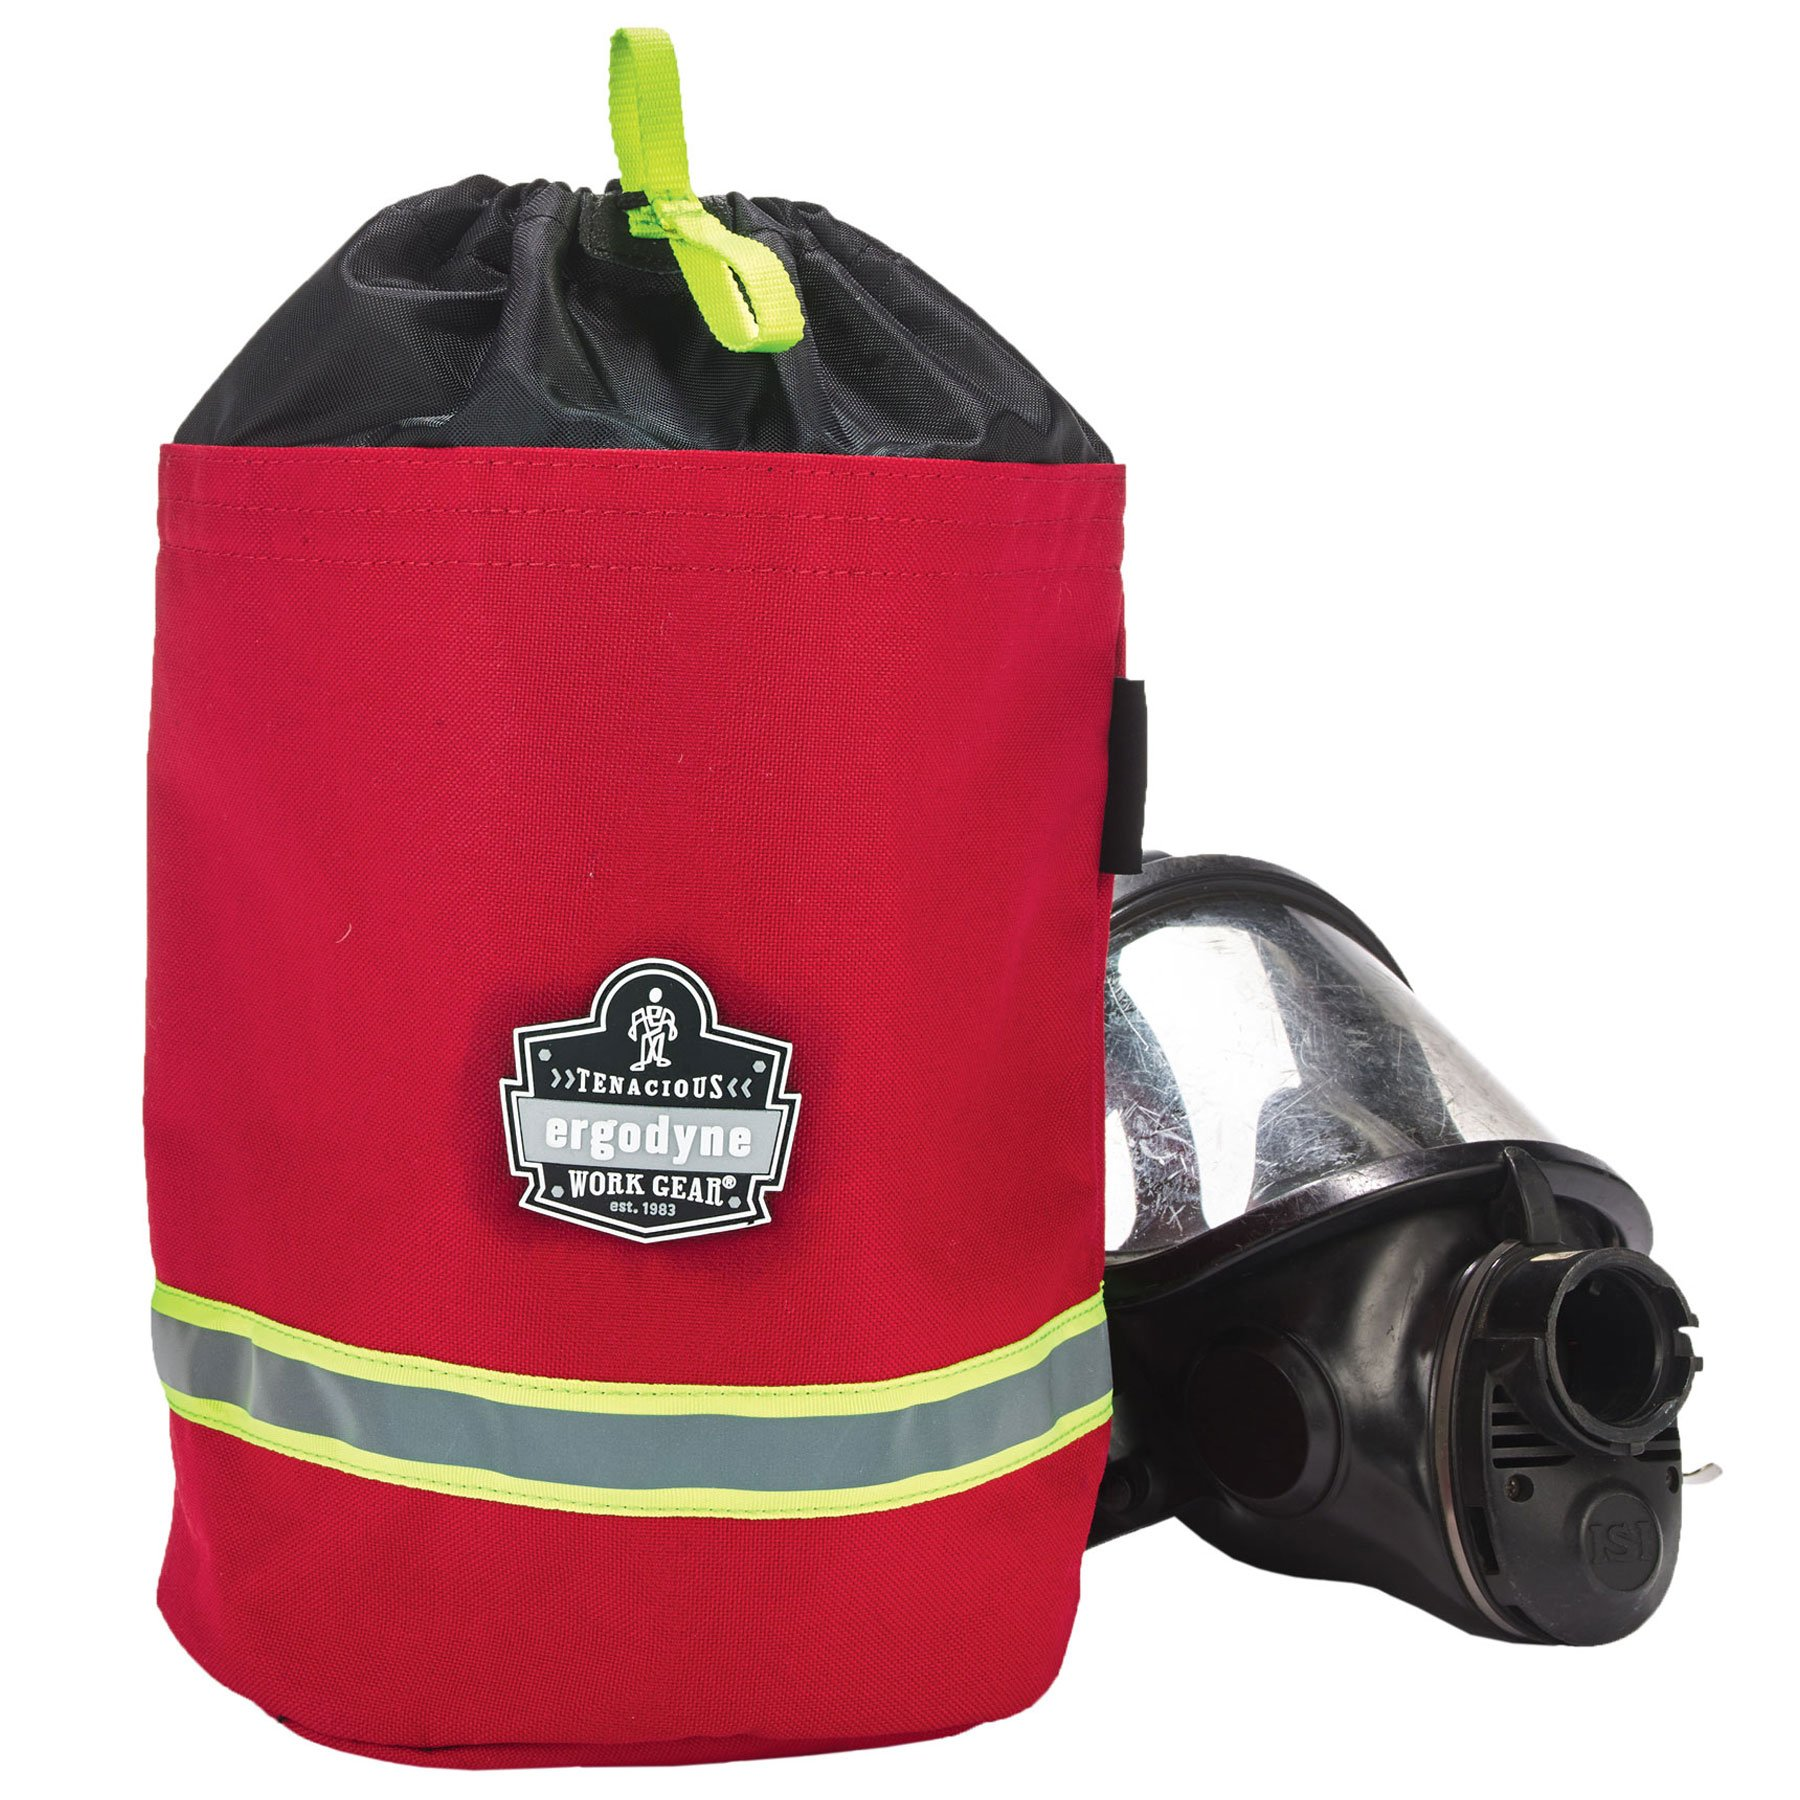 Ergodyne Arsenal 5080L Fireman's SCBA Respirator Firefighter Mask Bag for air pack with Fleece Lining